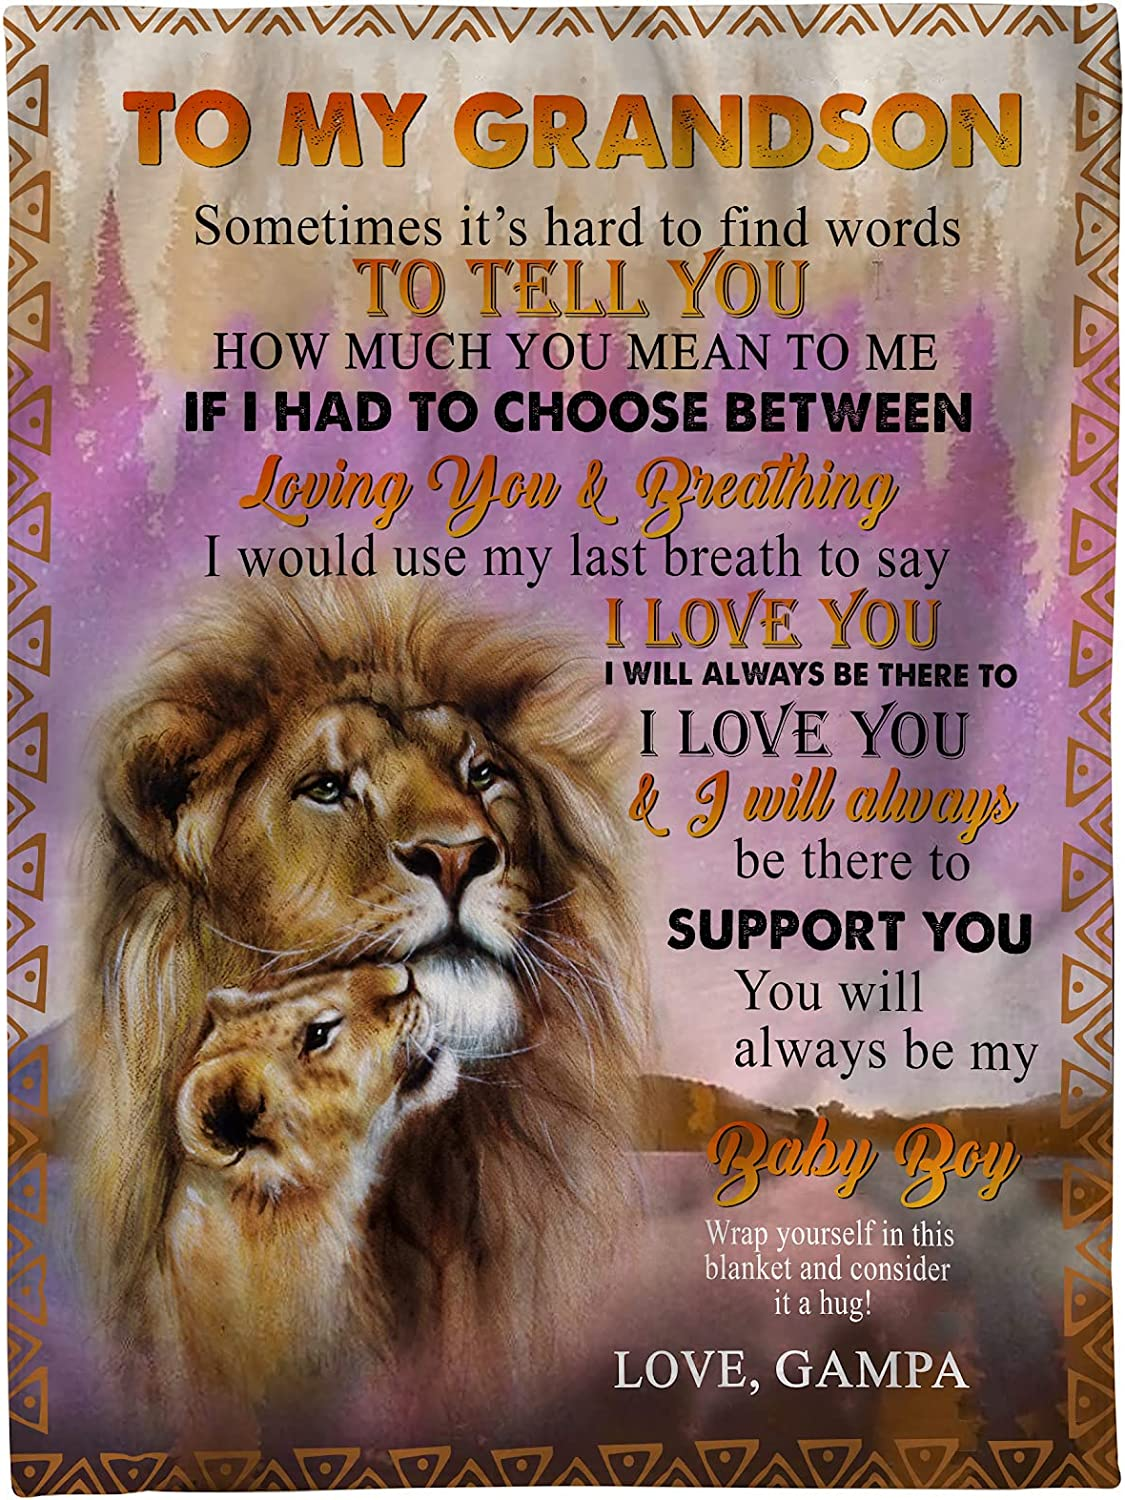 Personalized Blanket-to My Grandson Lion Love Max 42% OFF Always Support You Bargain